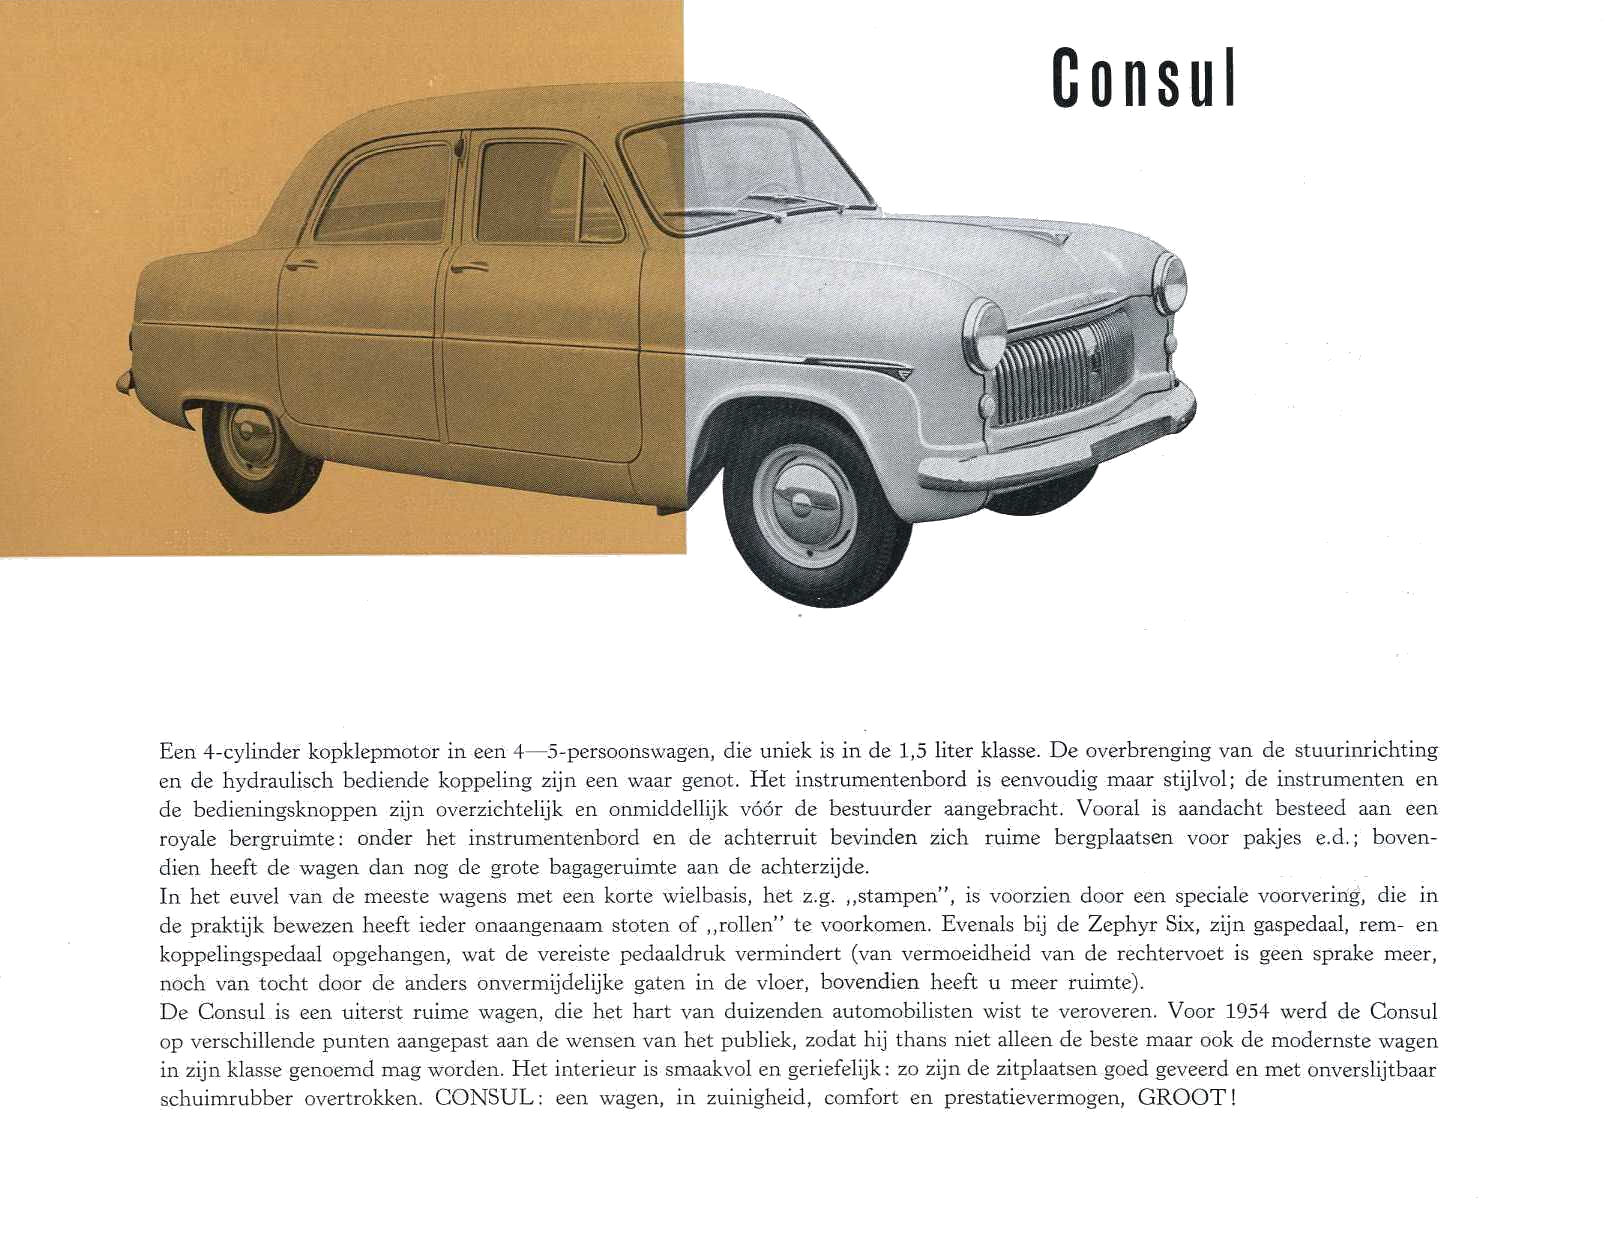 1954 ford consul zephyr 6 brochure for What was a consul